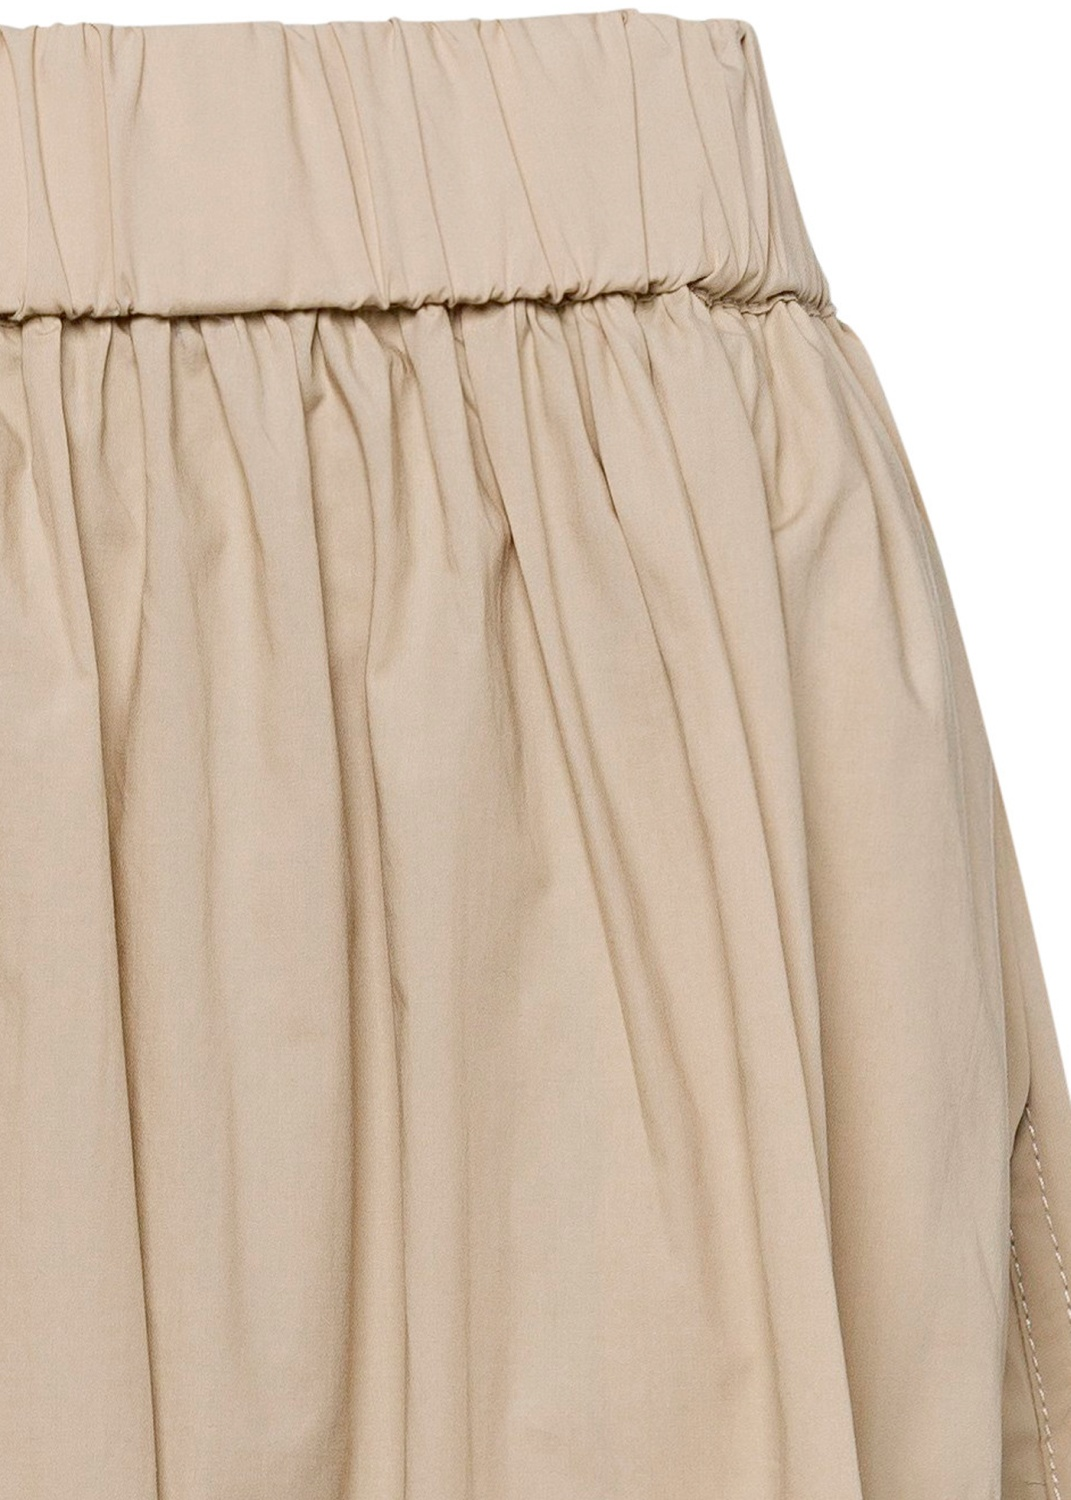 Cotton skirt female image number 2